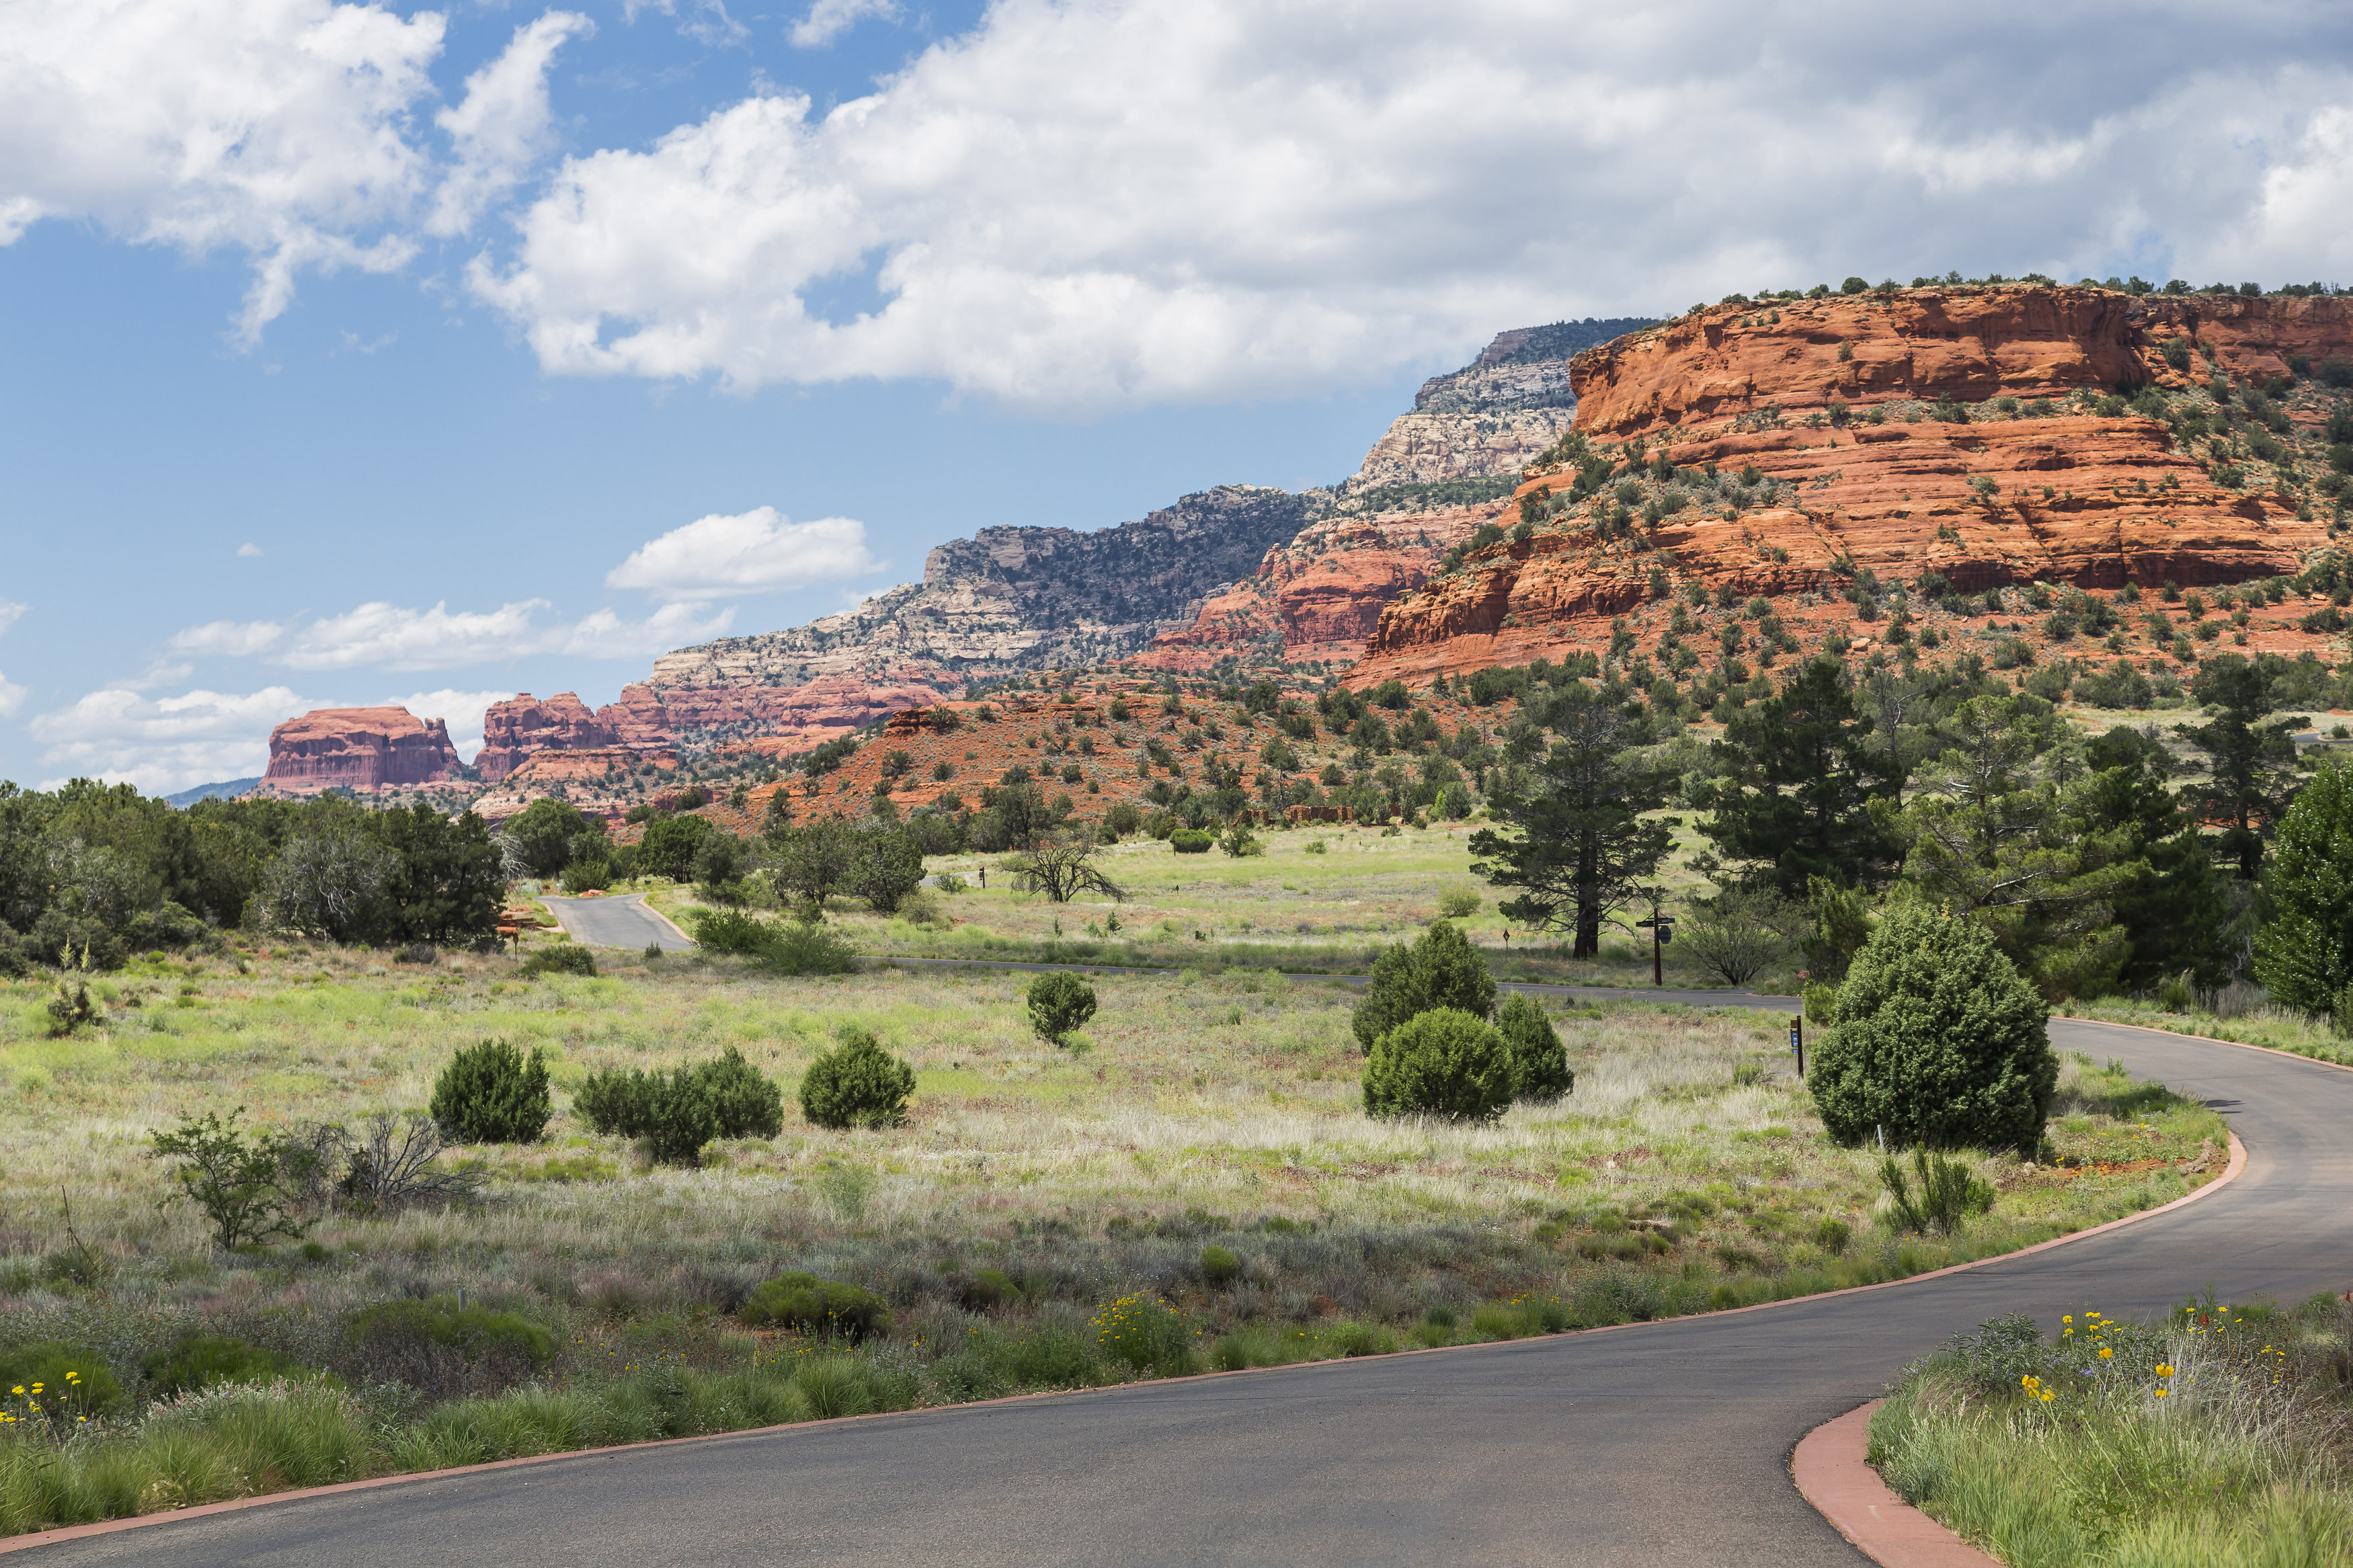 Land for Sale at Aerie Lot 28 360 Aerie Rd 28 Sedona, Arizona 86336 United States